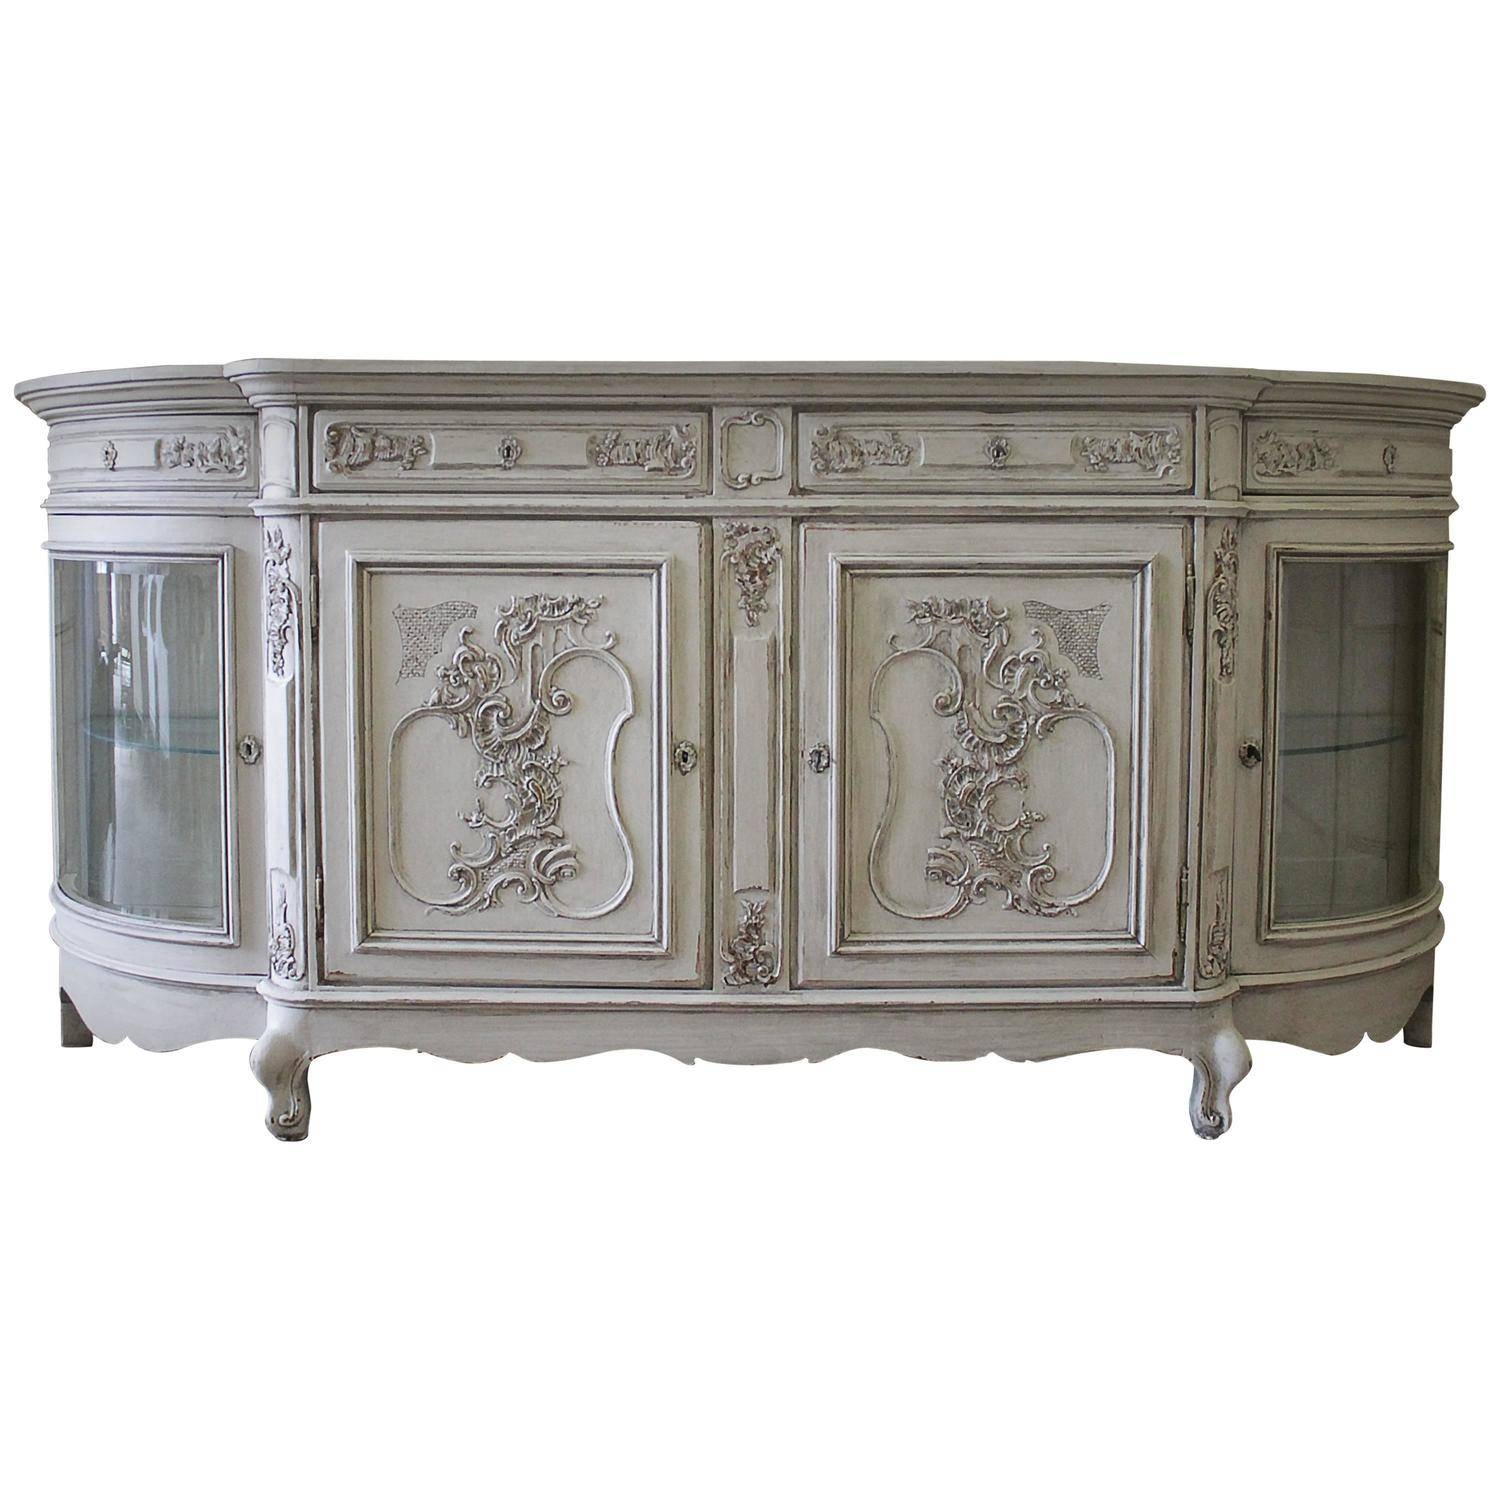 20Th Century Antique Painted French Oak Server For Sale At 1Stdibs within French Style Sideboards (Image 1 of 30)